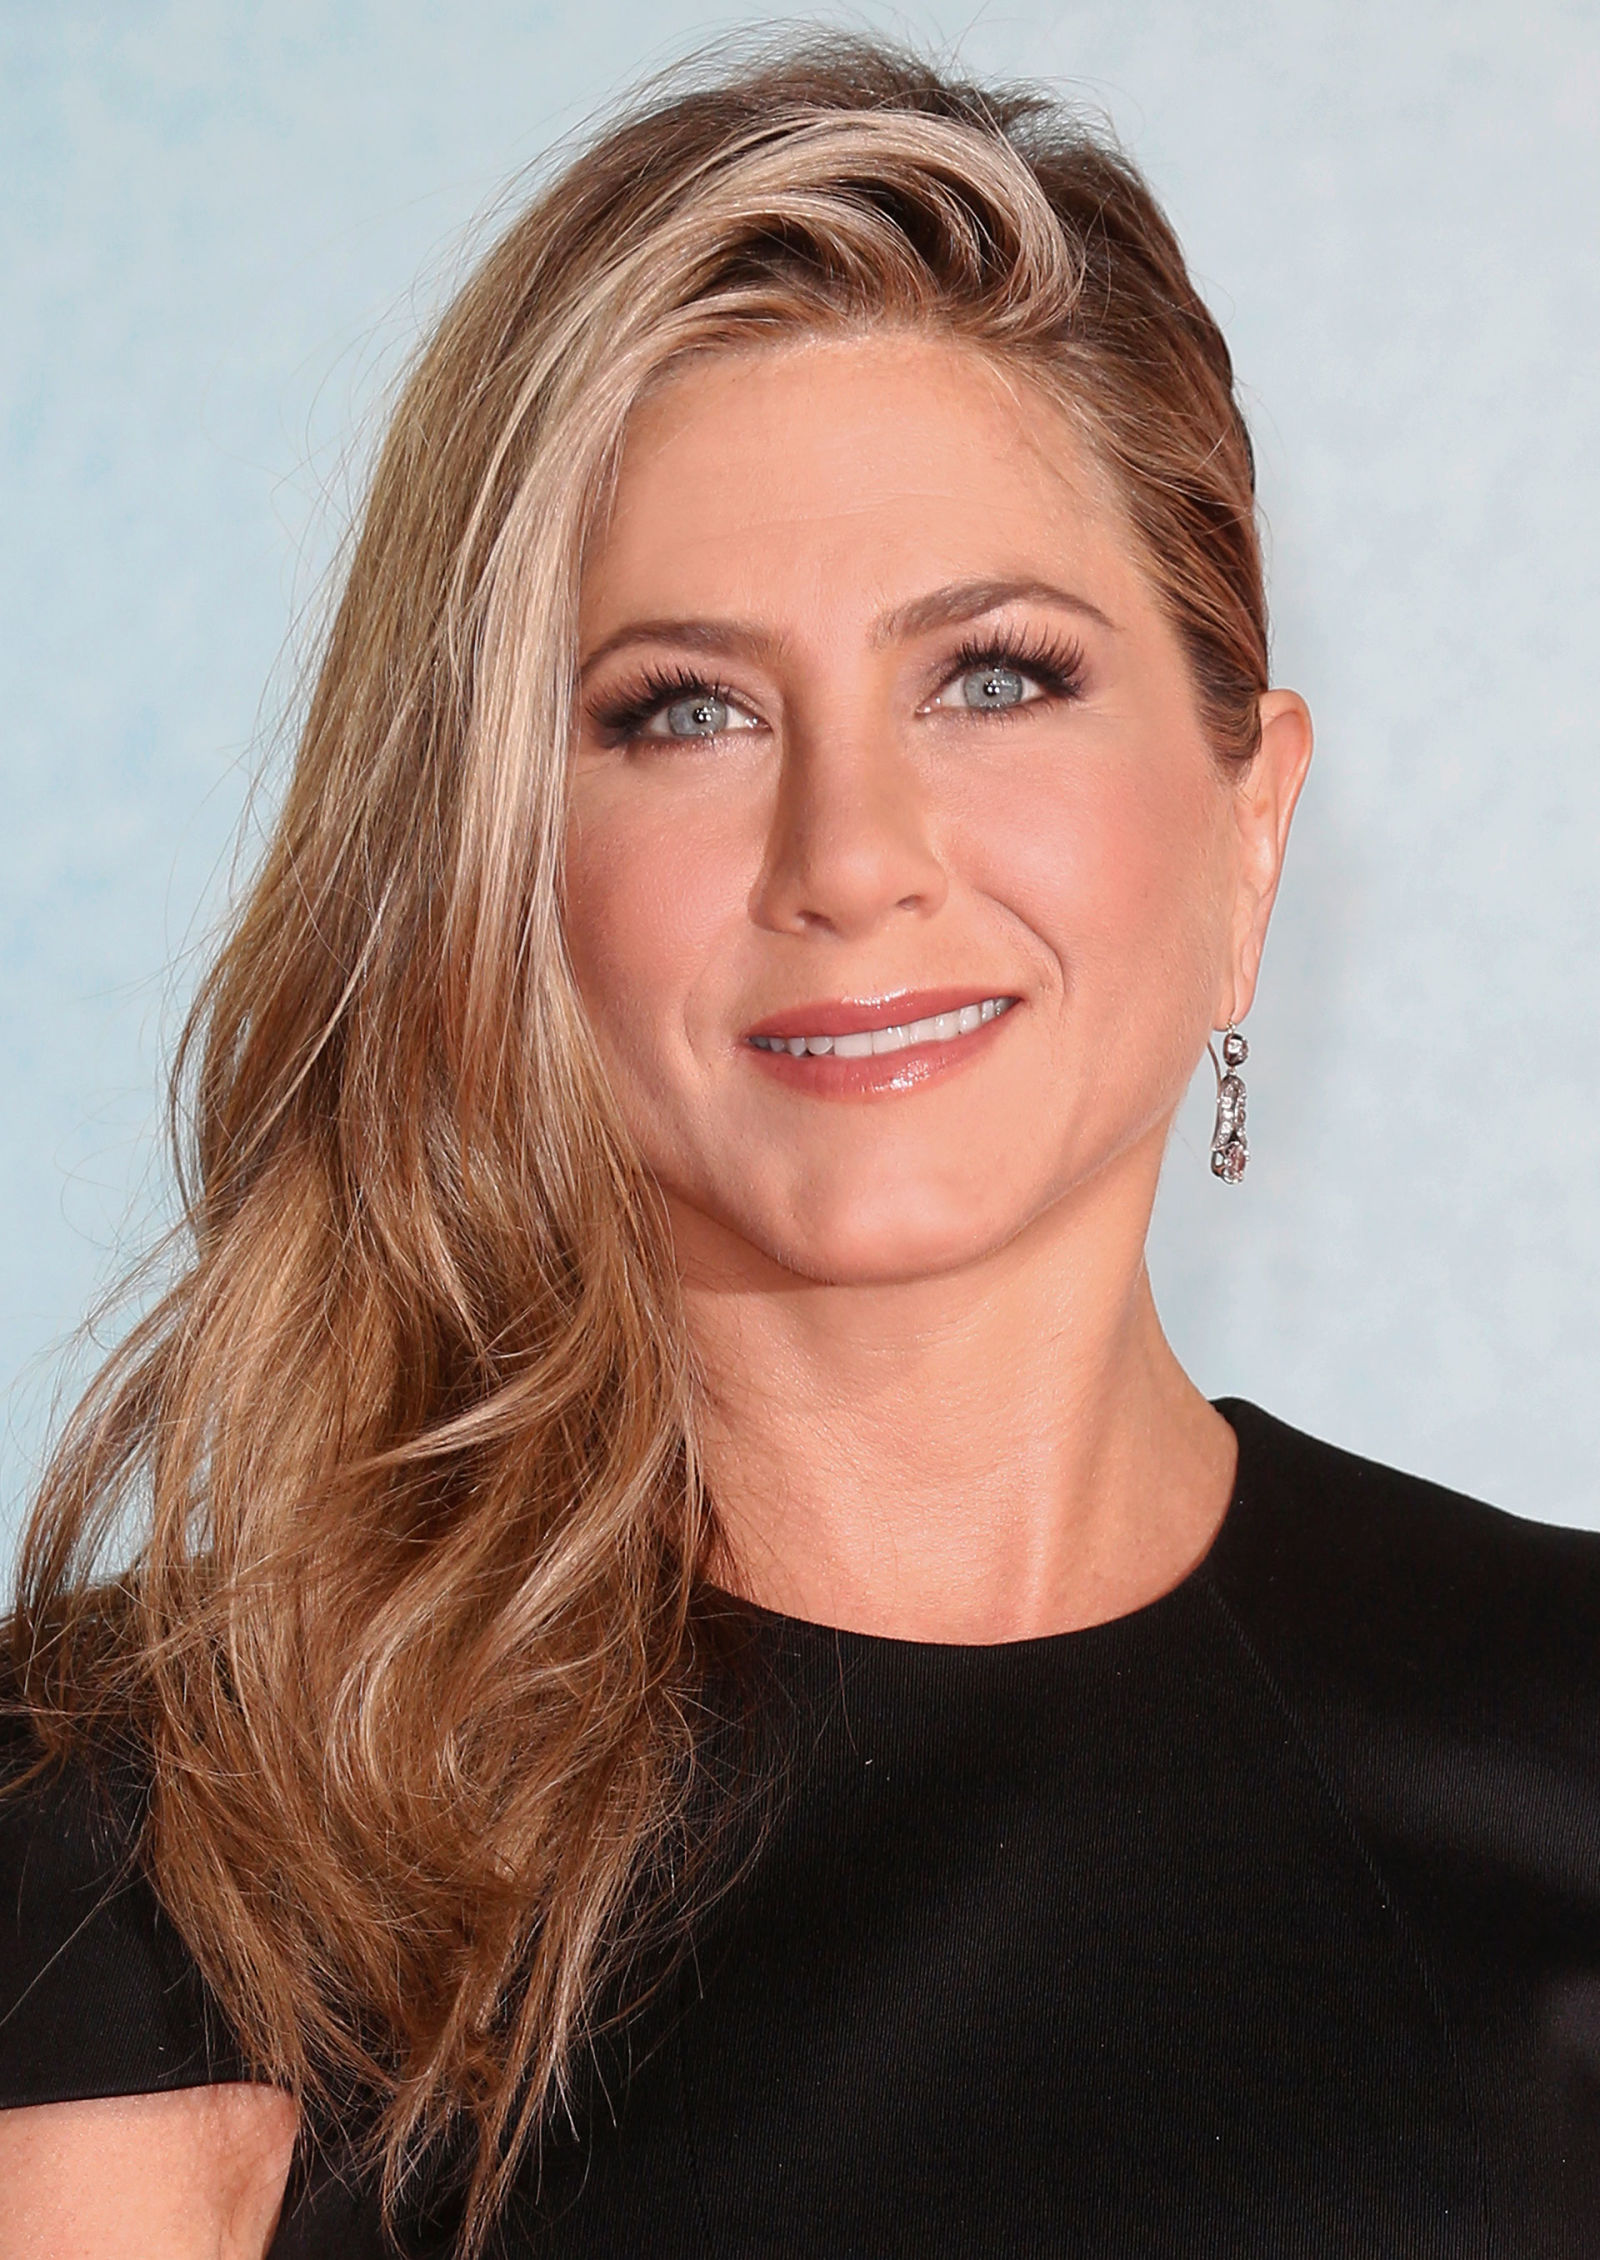 Jennifer Aniston Is Latest Celeb With a Long, Angled Bob Hairstyle